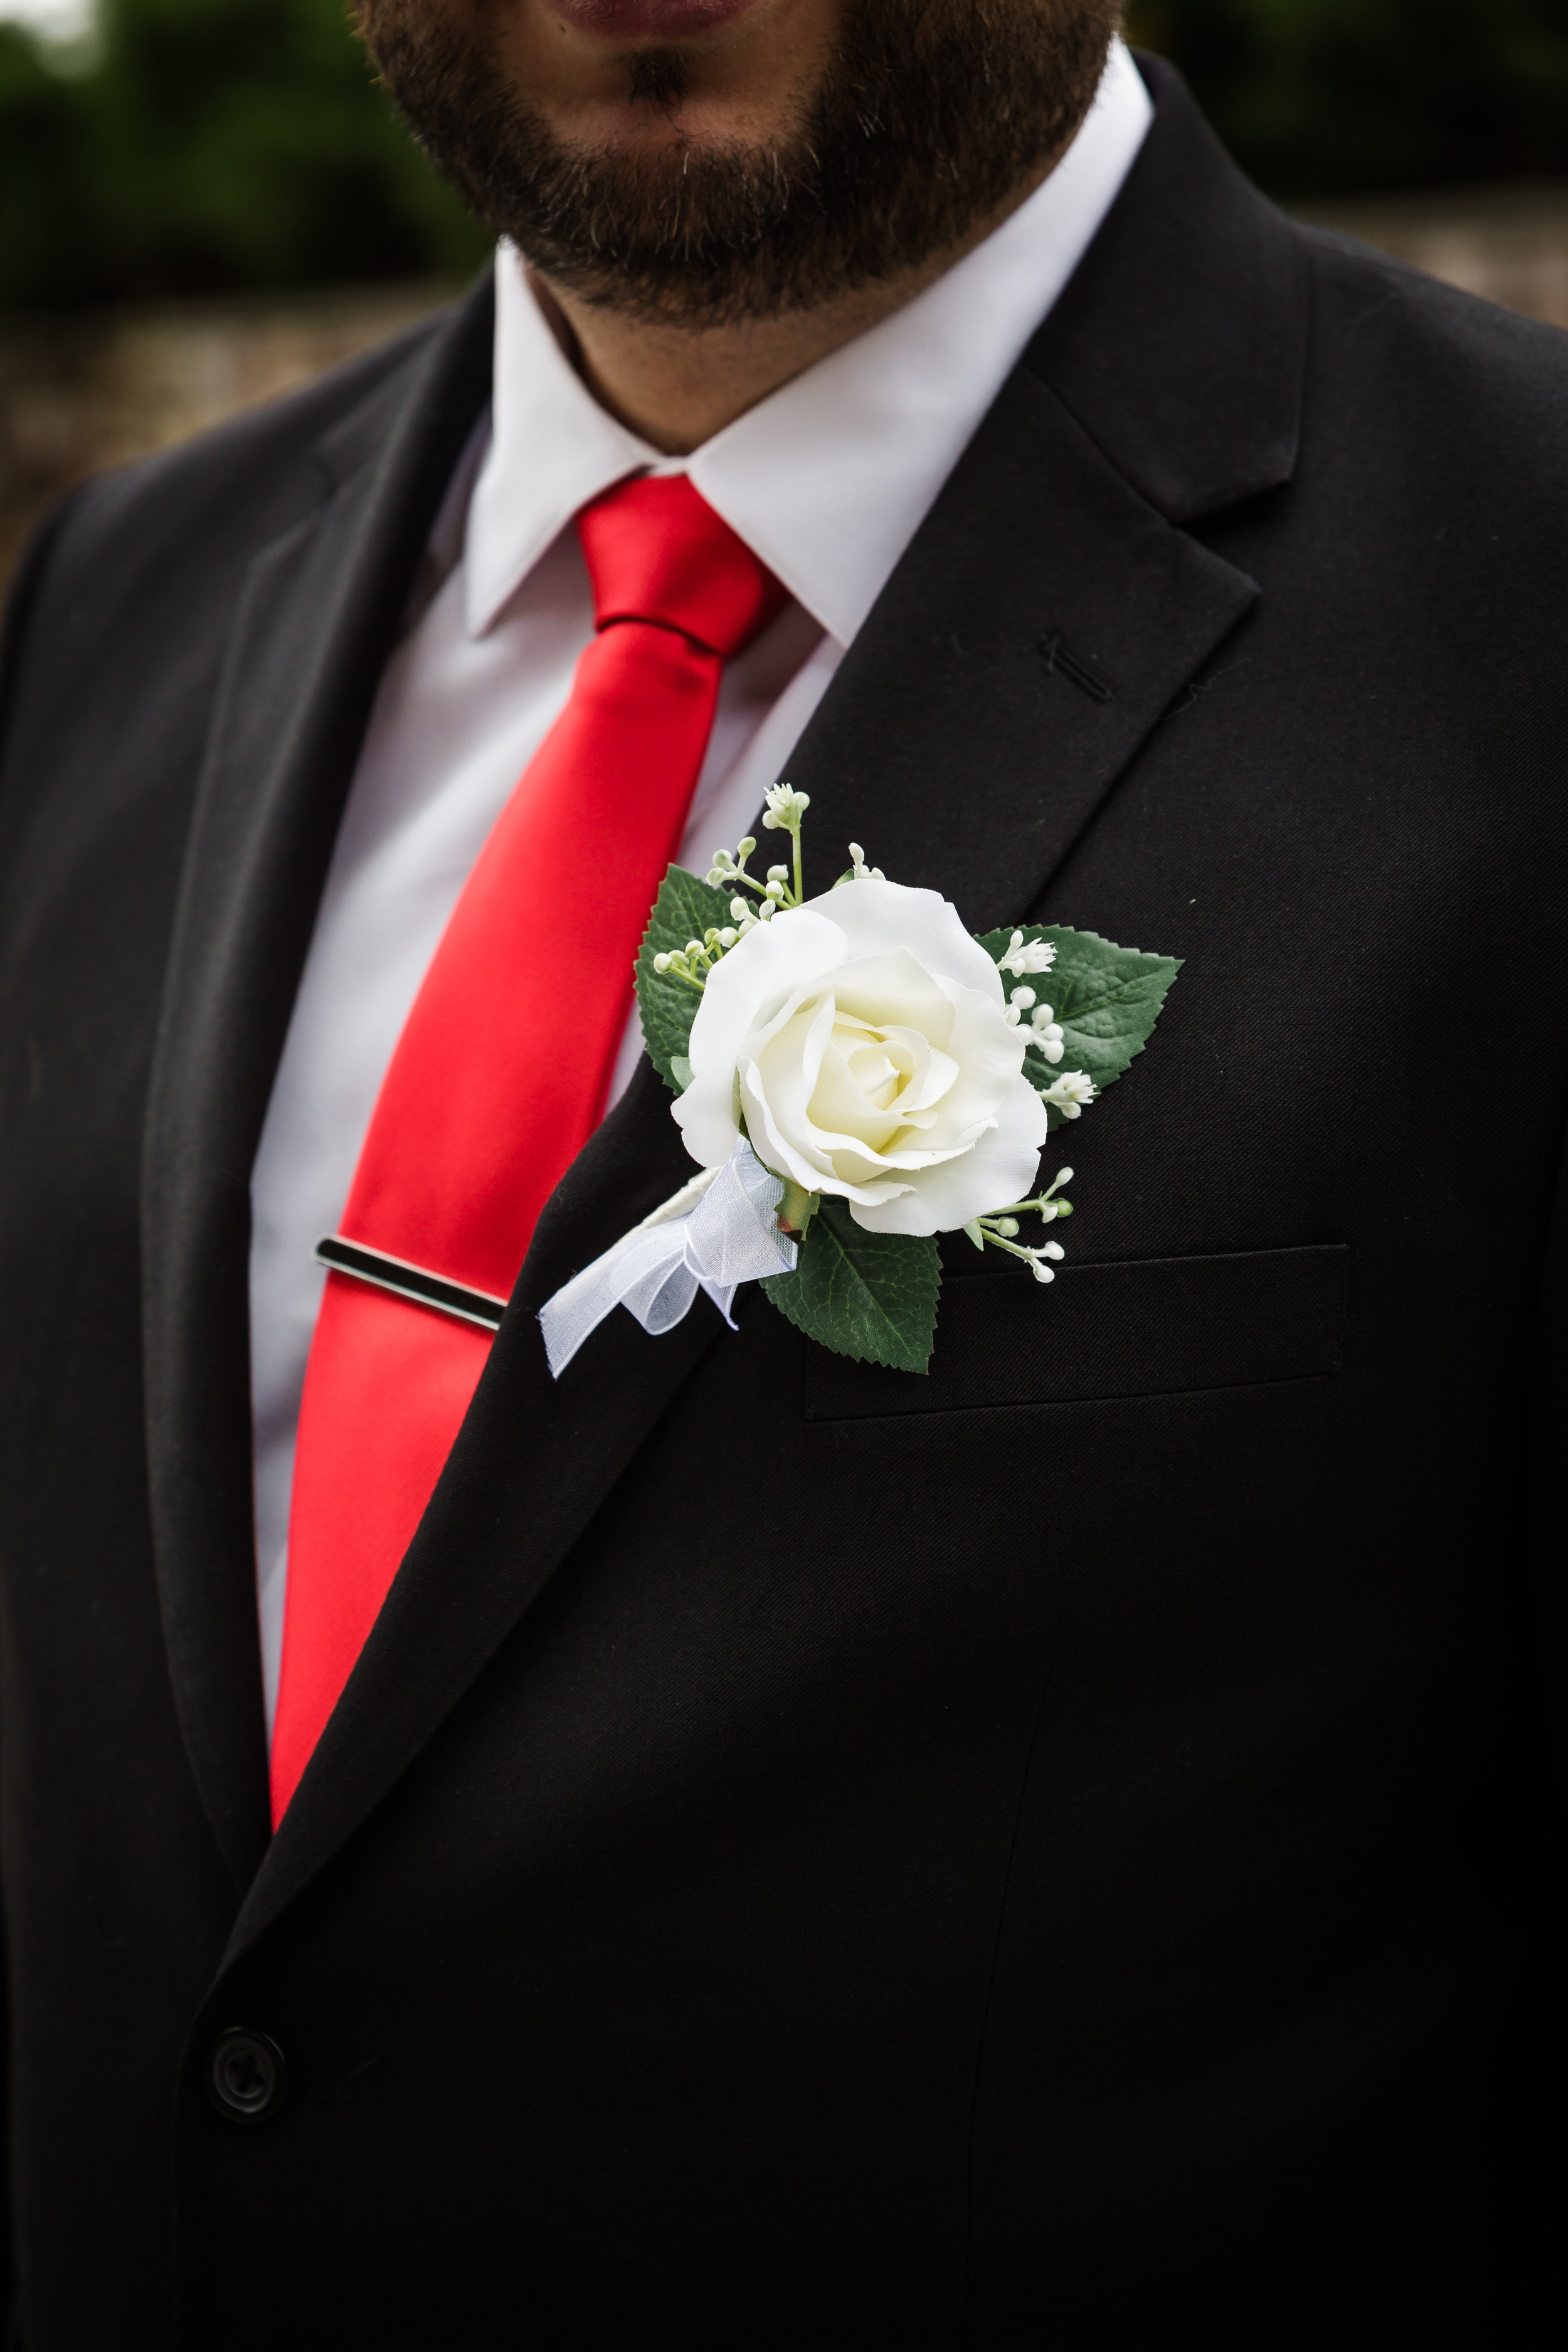 CHAUNCEY HOTEL AND CONFERENCE CENTER WEDDING PHOTOGRAPHY-44.jpg